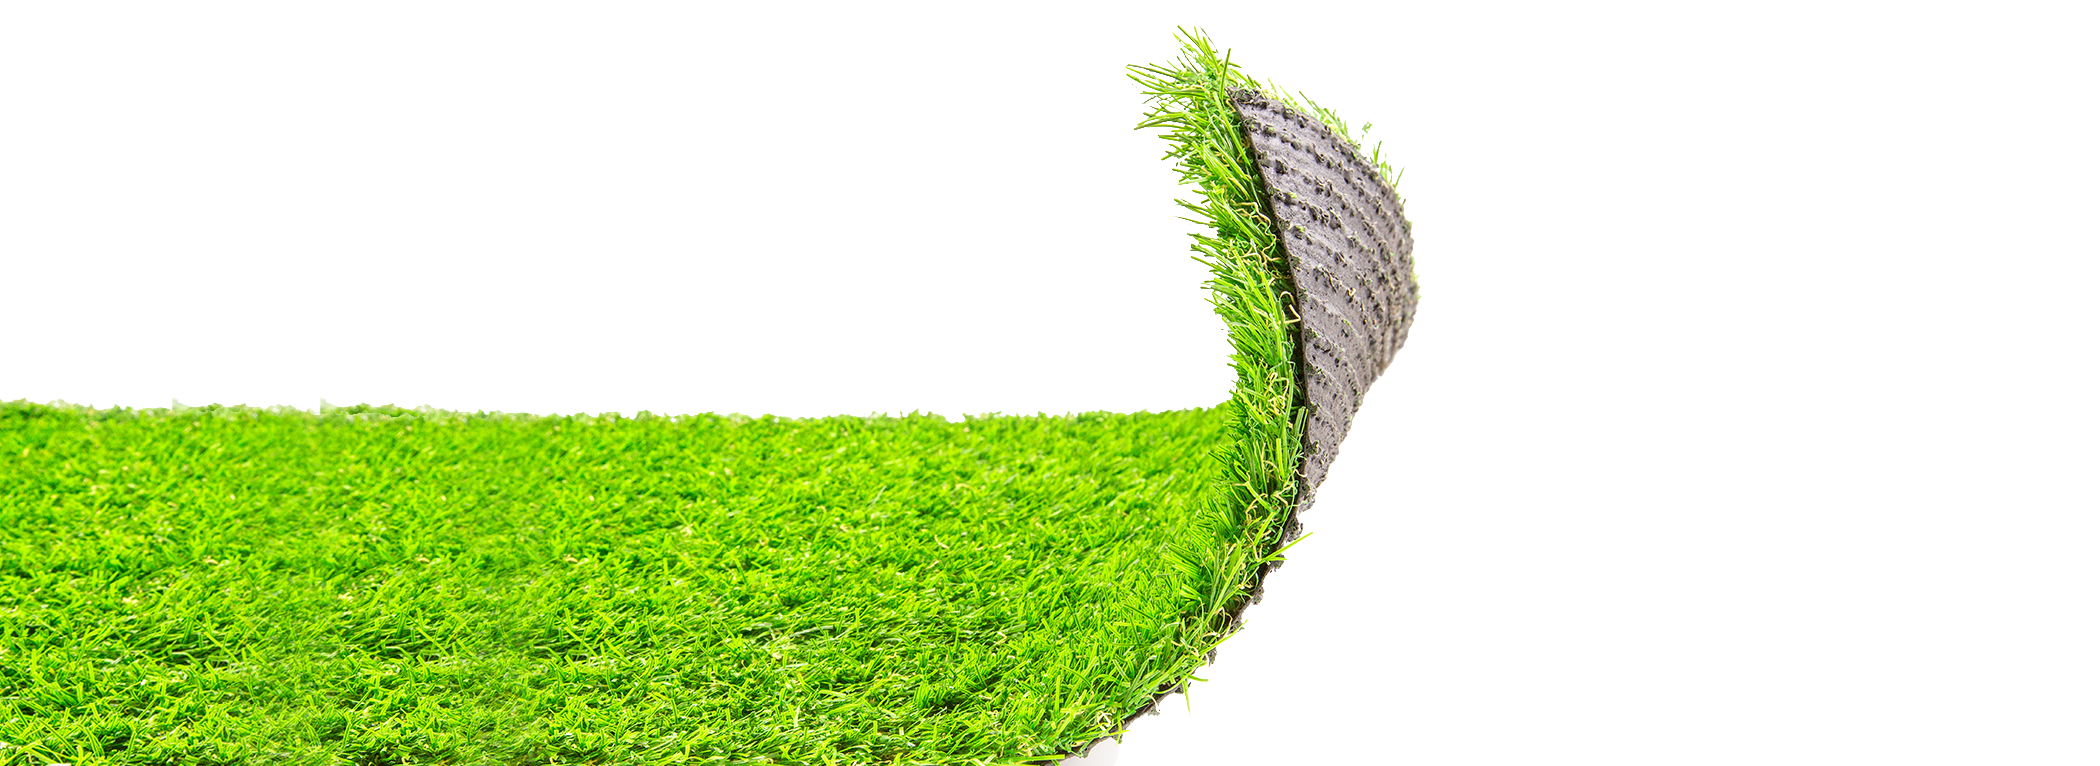 Land clipart carpet grass. Home synthetic turf depot